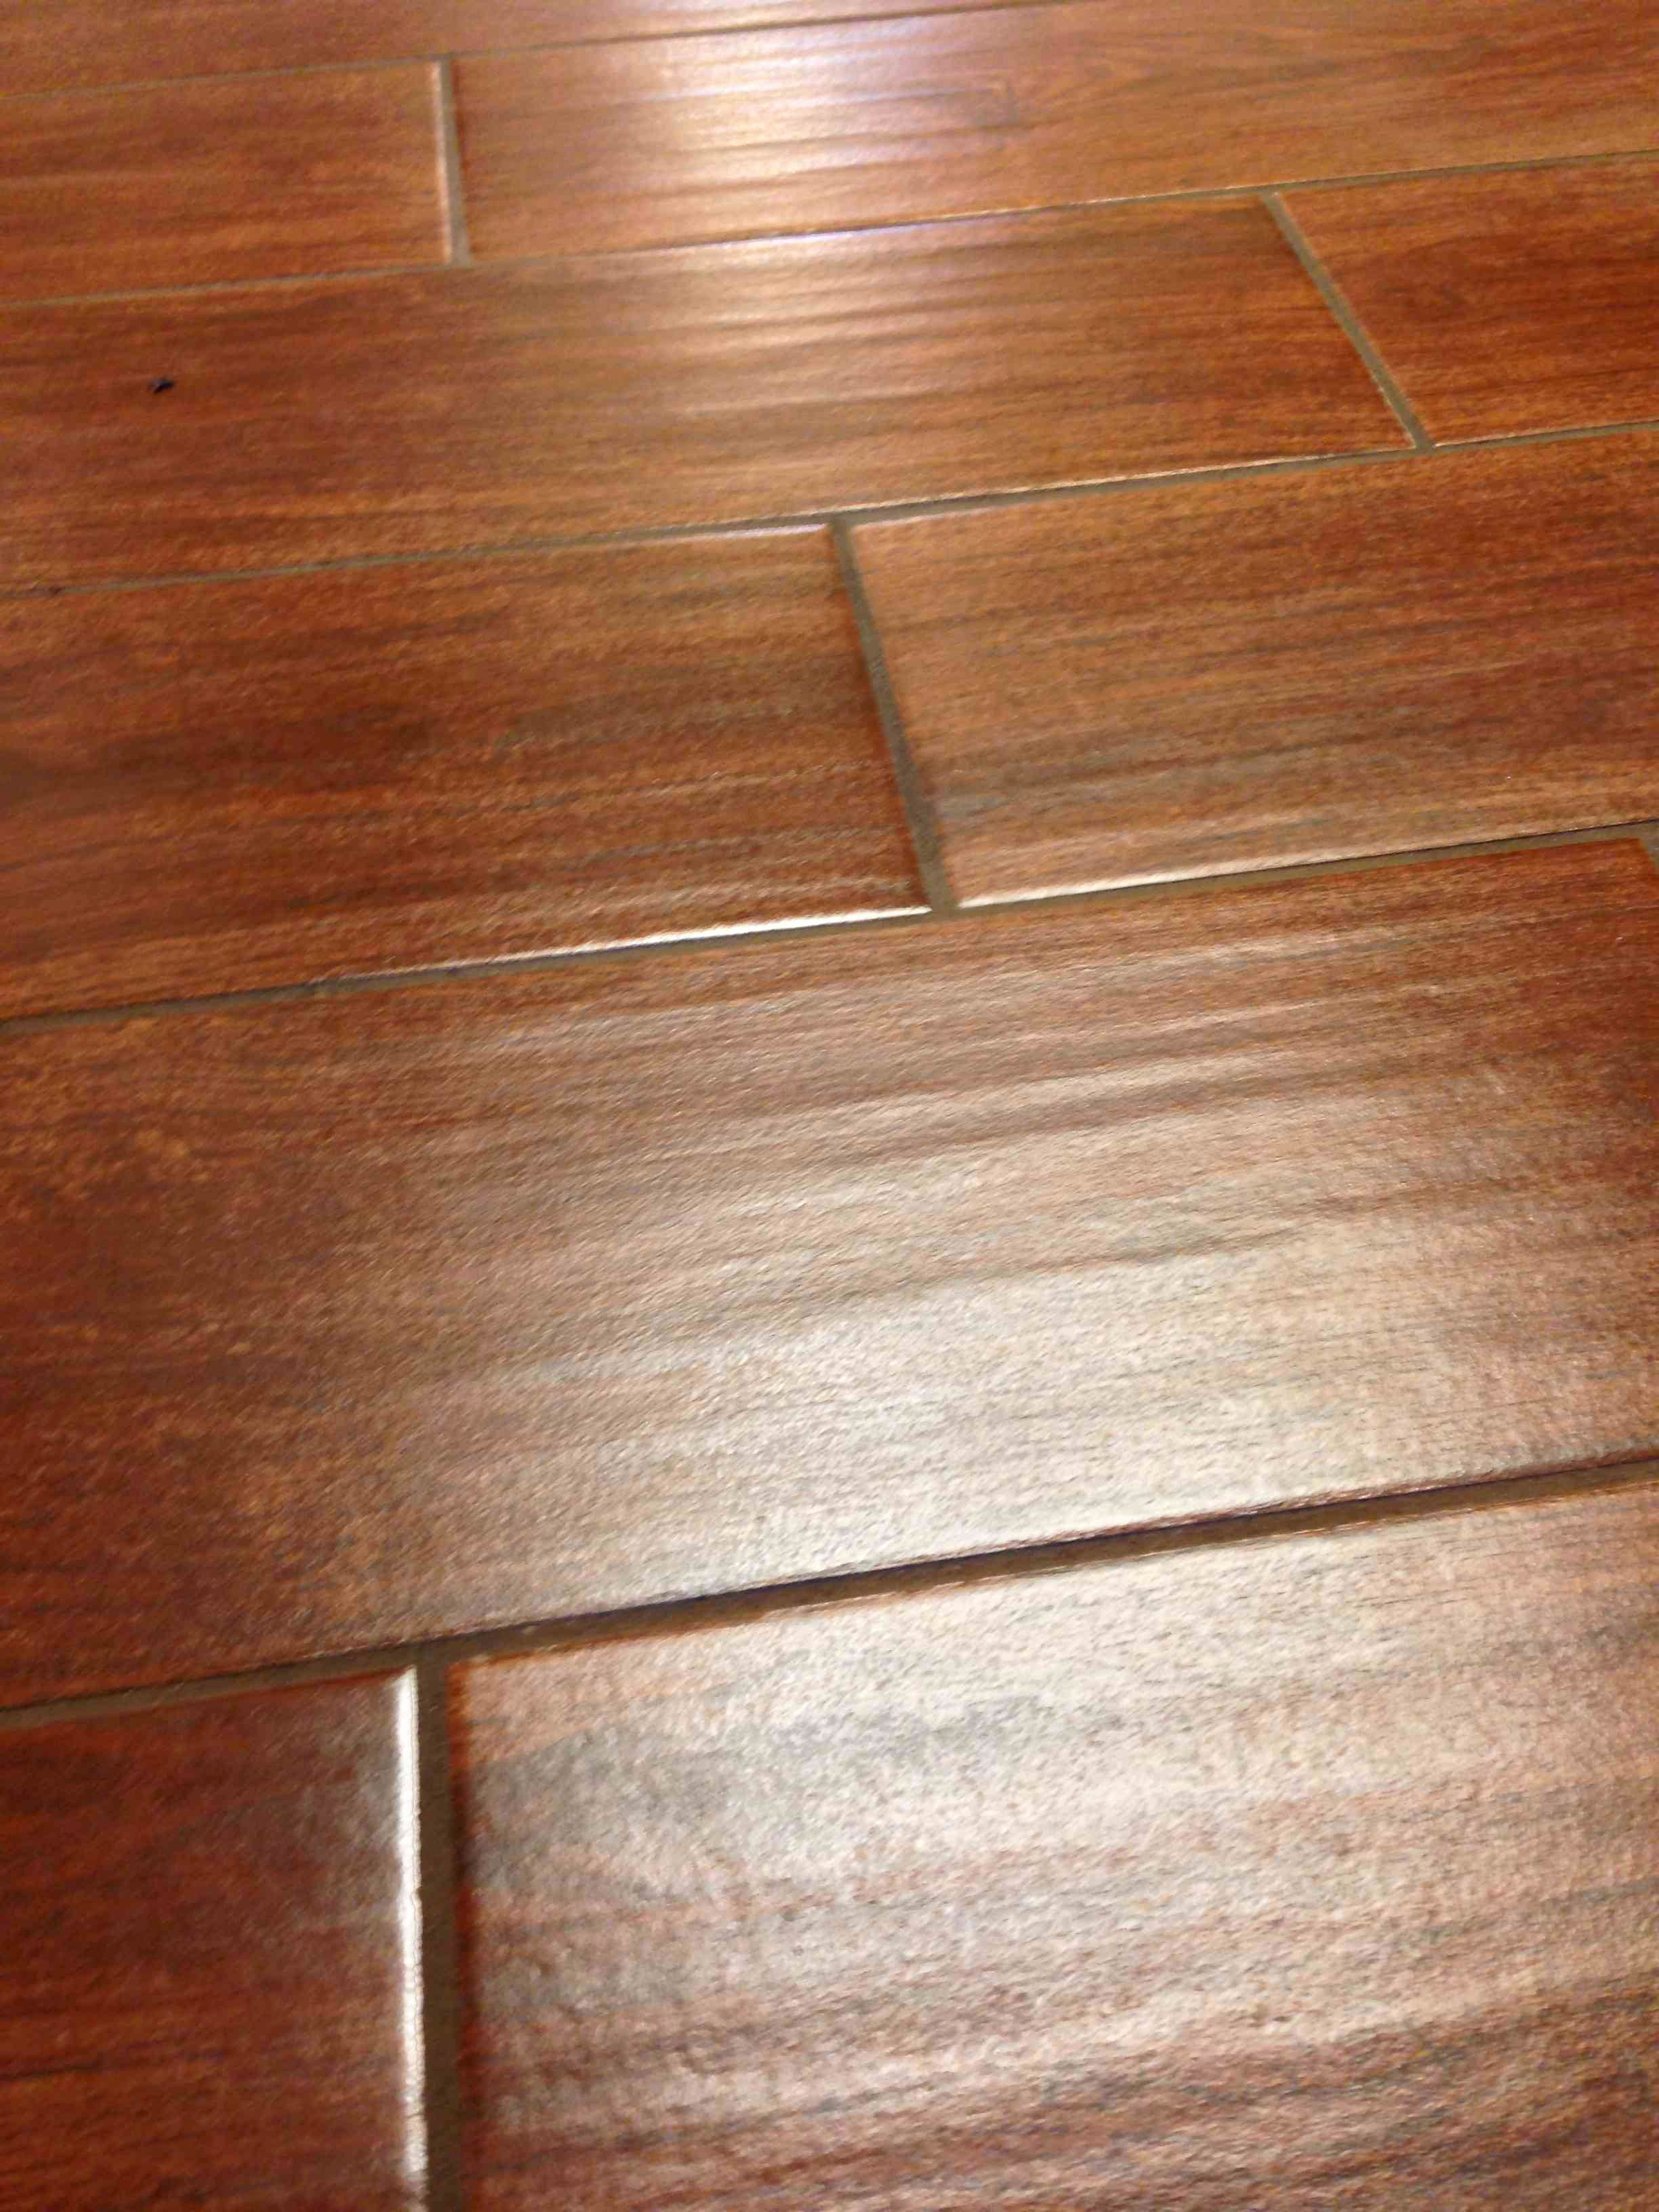 Acacia solid Hardwood Flooring Of Hardwood Floor Store 50 Best Real Hardwood Floors 50 S Floor Plan Pertaining to Hardwood Floor Store 50 Best Real Hardwood Floors 50 S